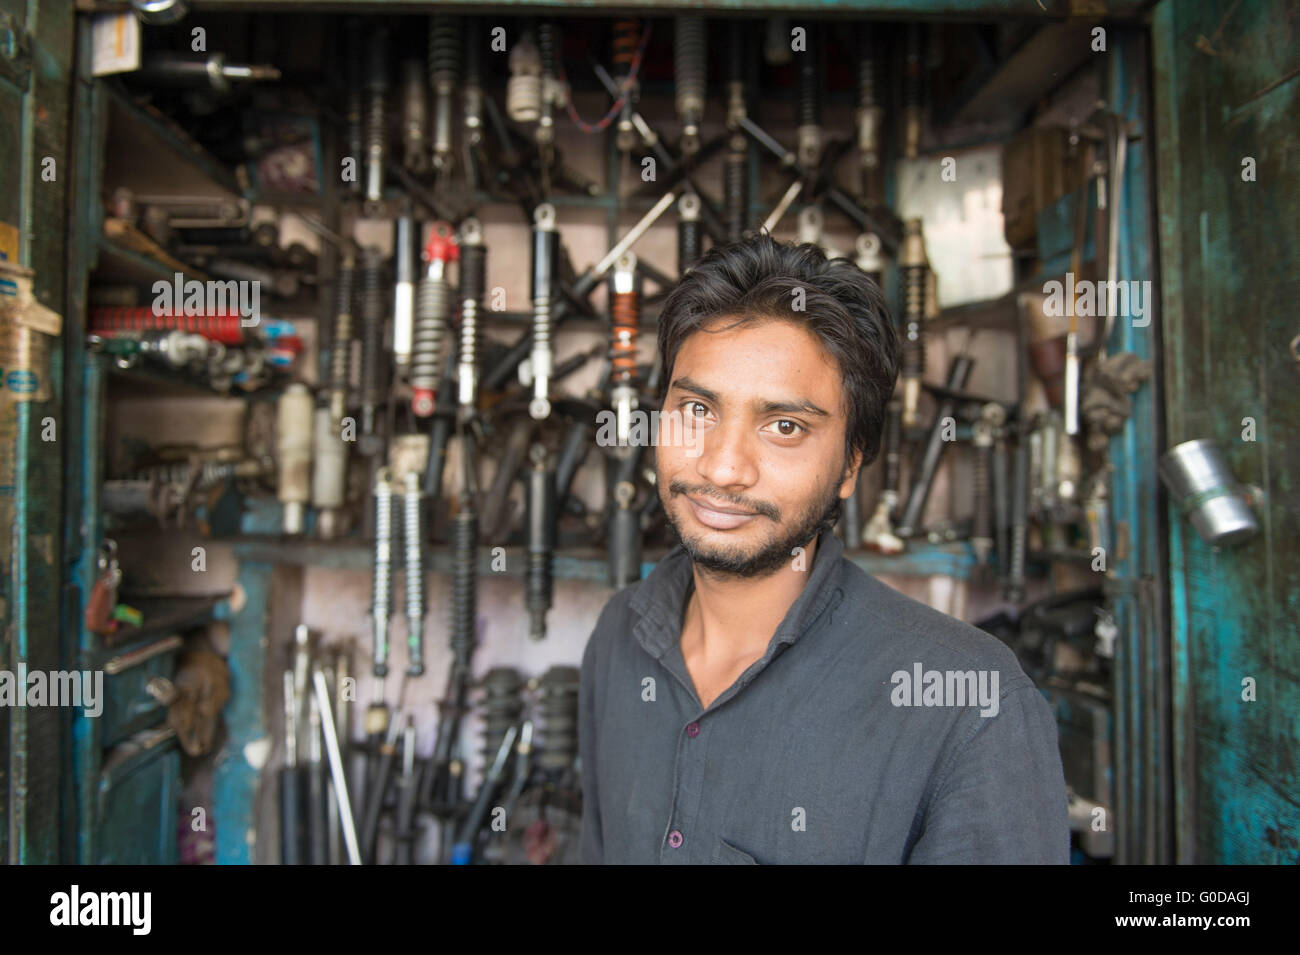 Local Indian mechanic pose for camera the street of Old Delhi in India. - Stock Image